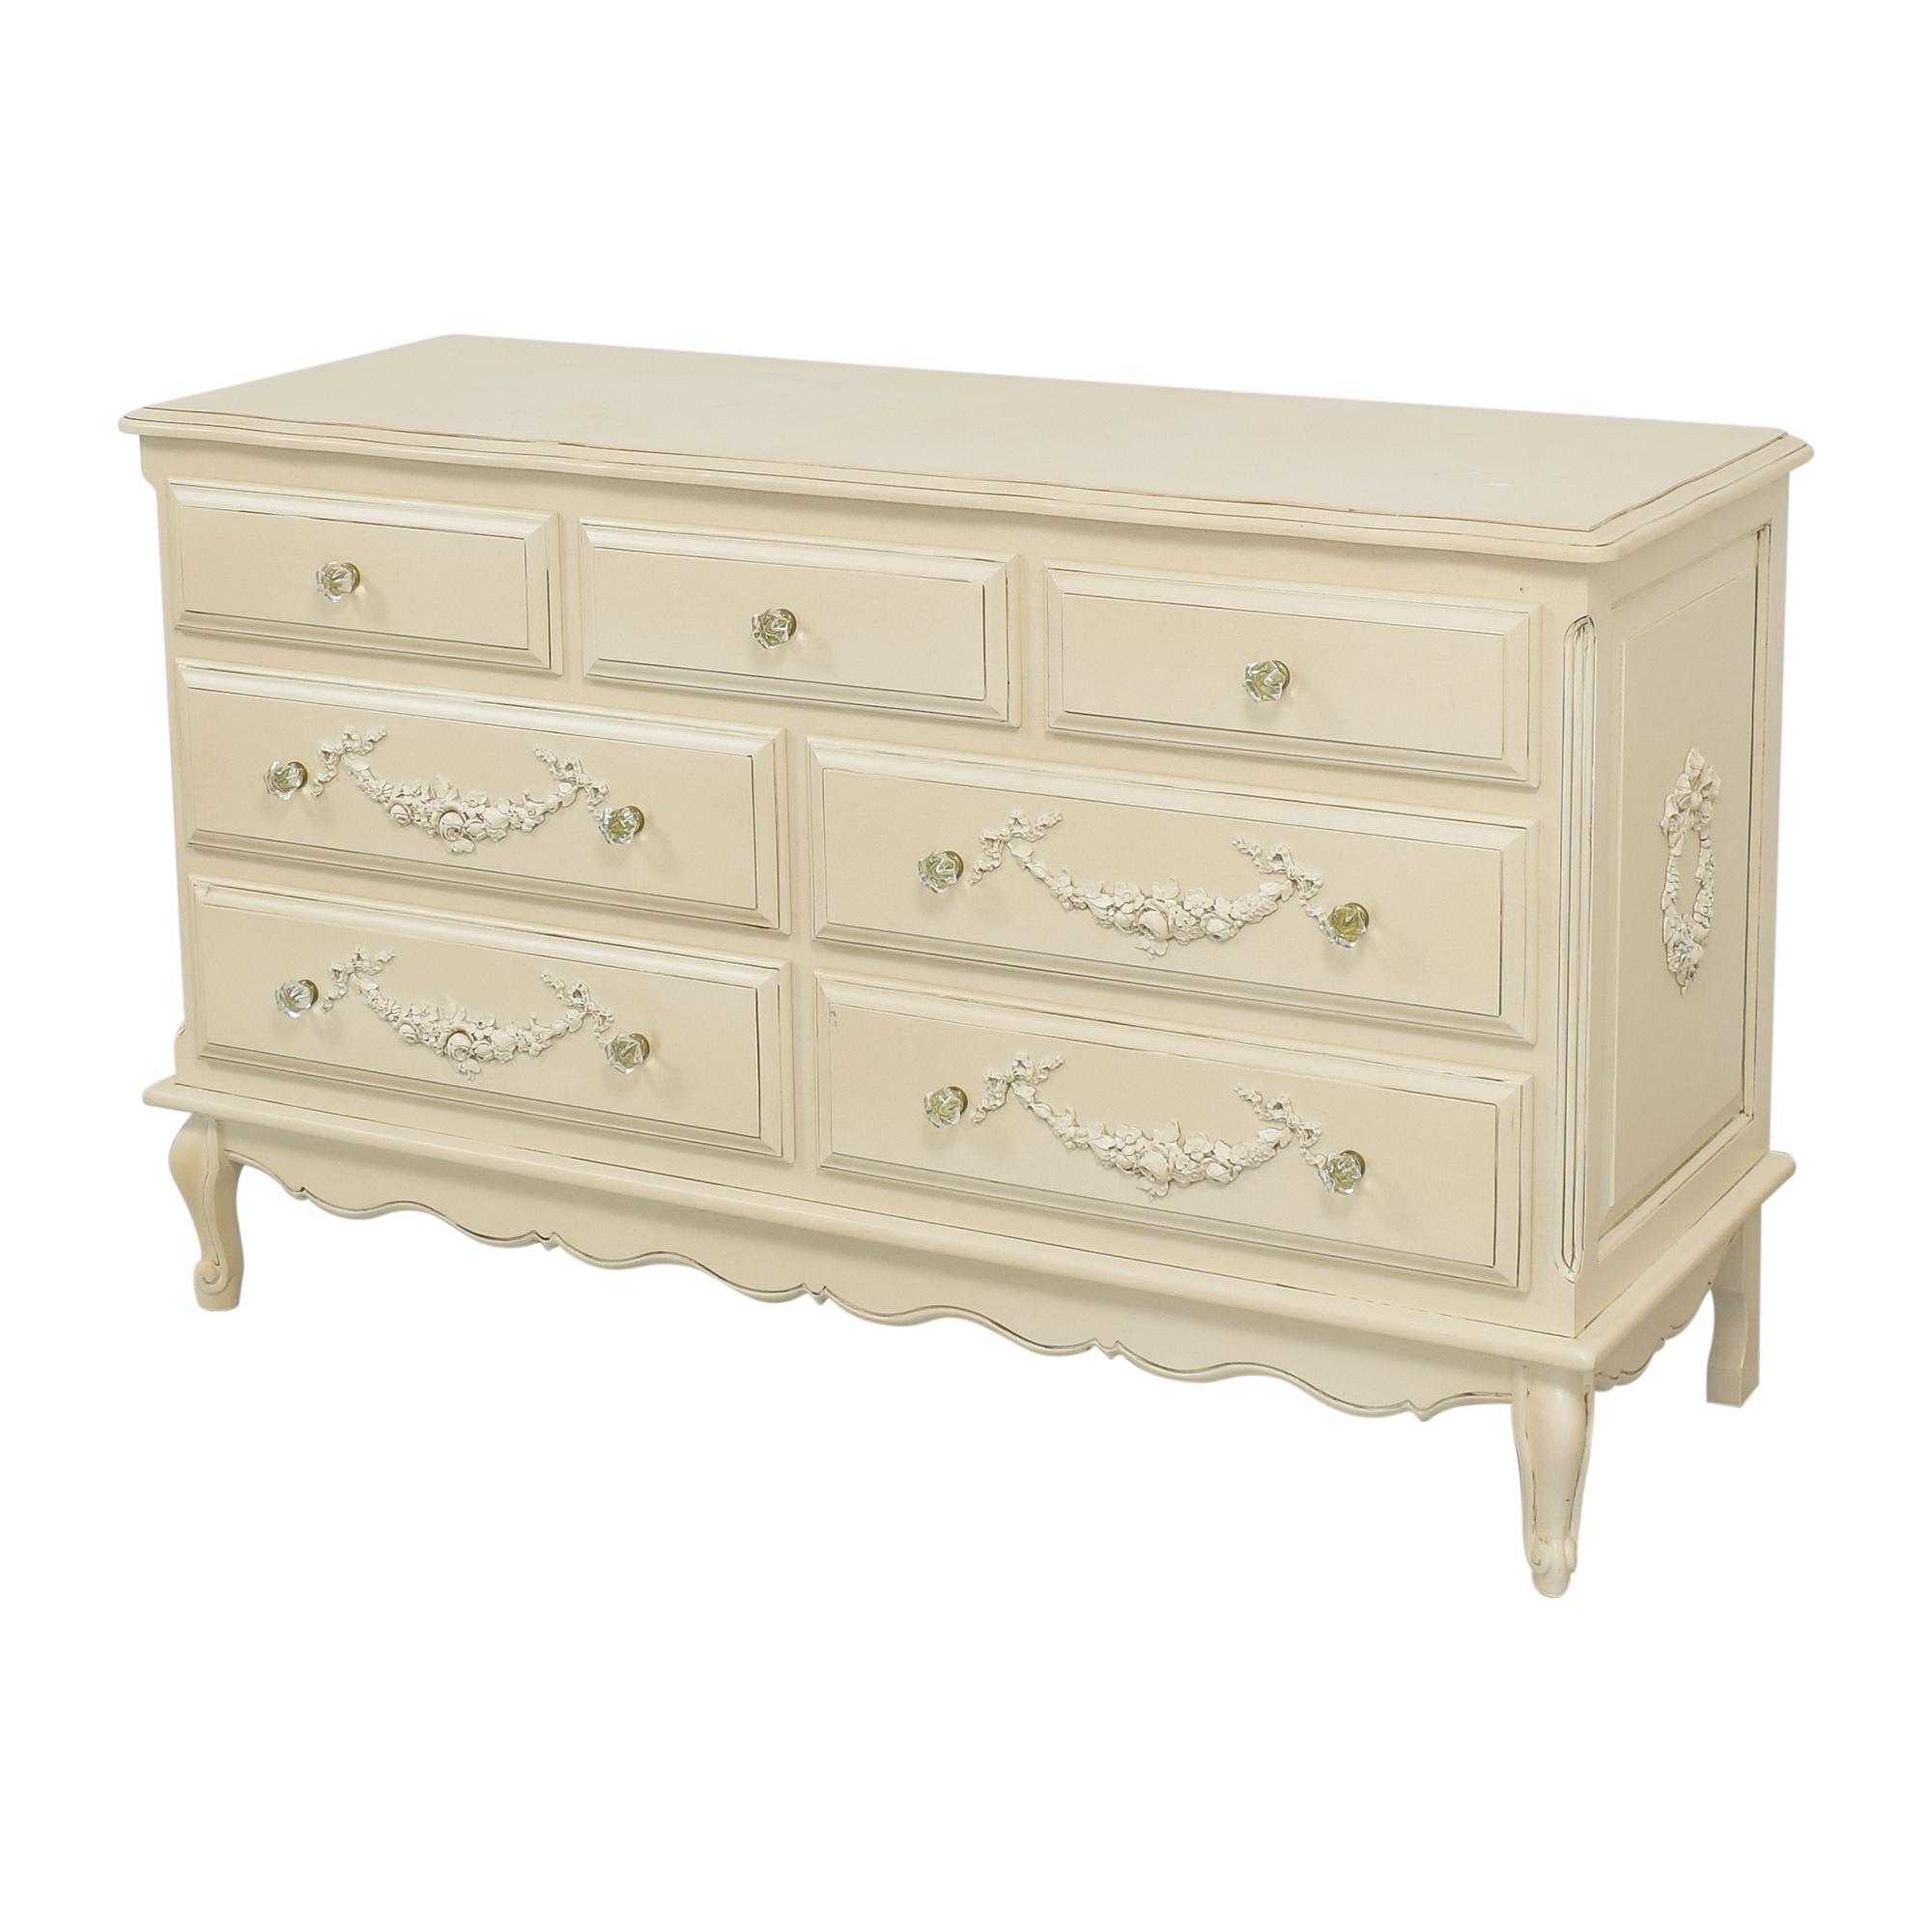 Bograd Kids Bograd Kids Belle Paris 7-Drawer Dresser